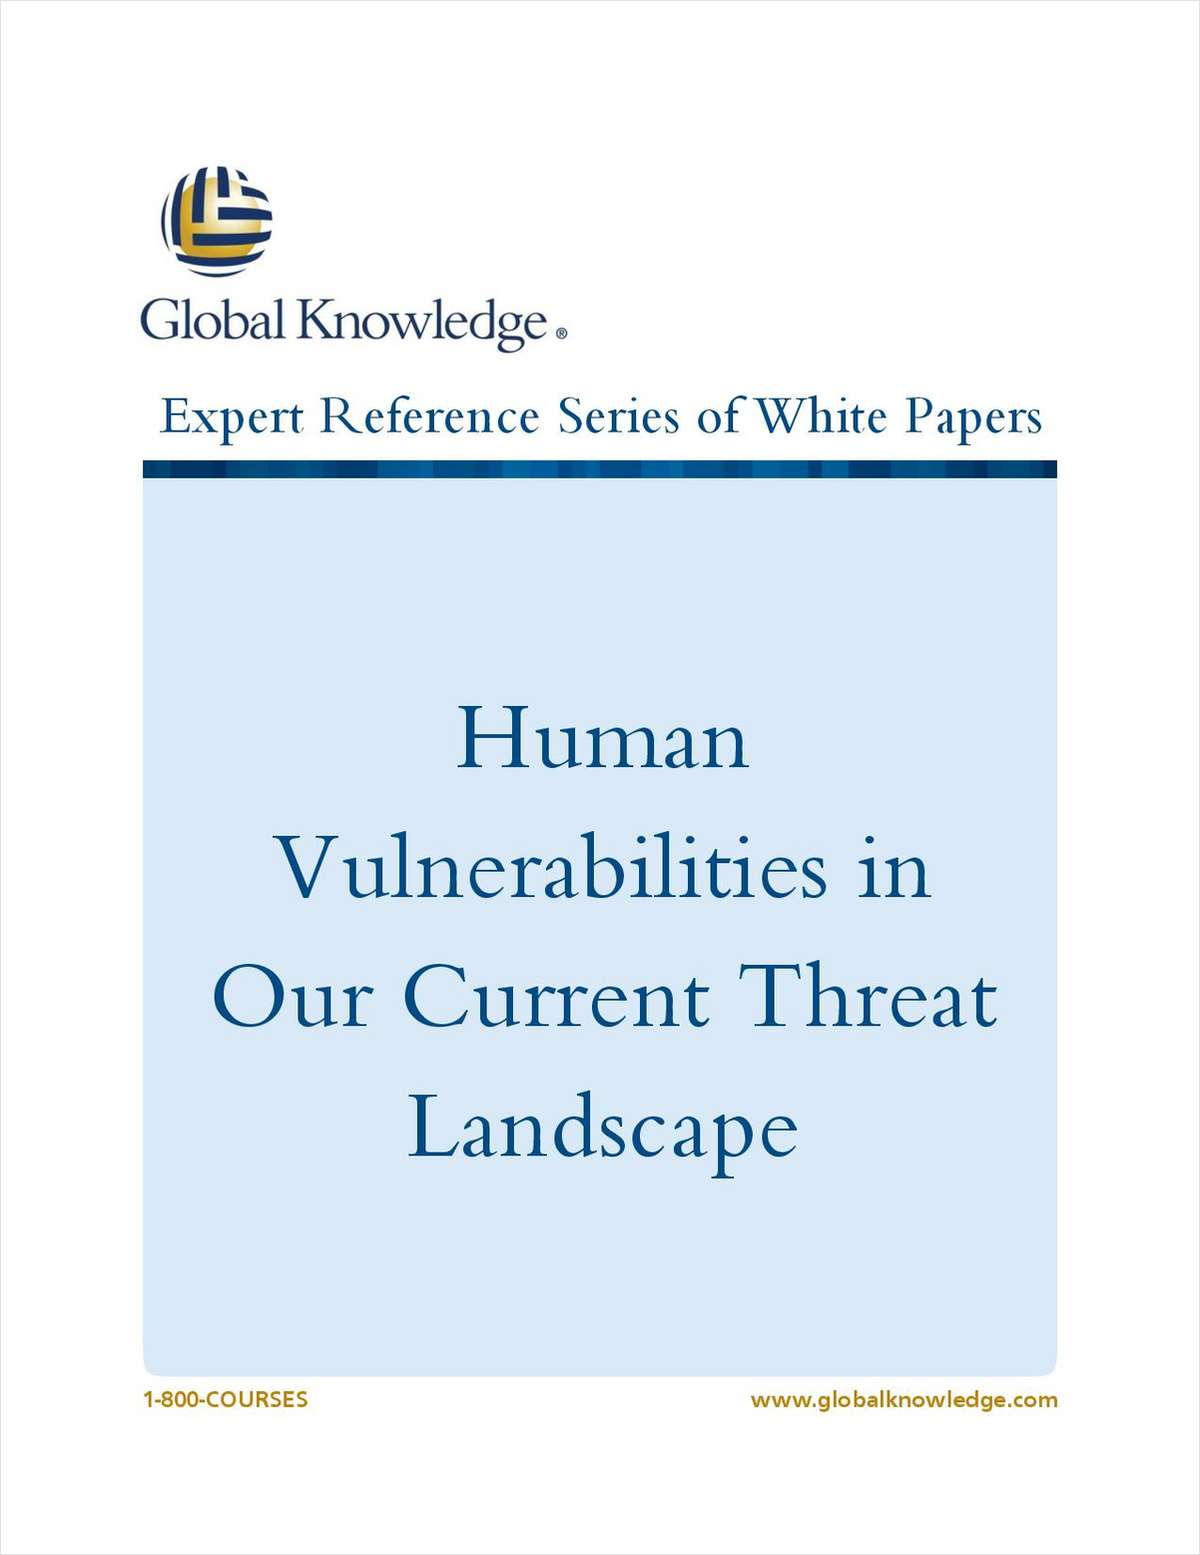 Human Vulnerabilities in Our Current Threat Landscape